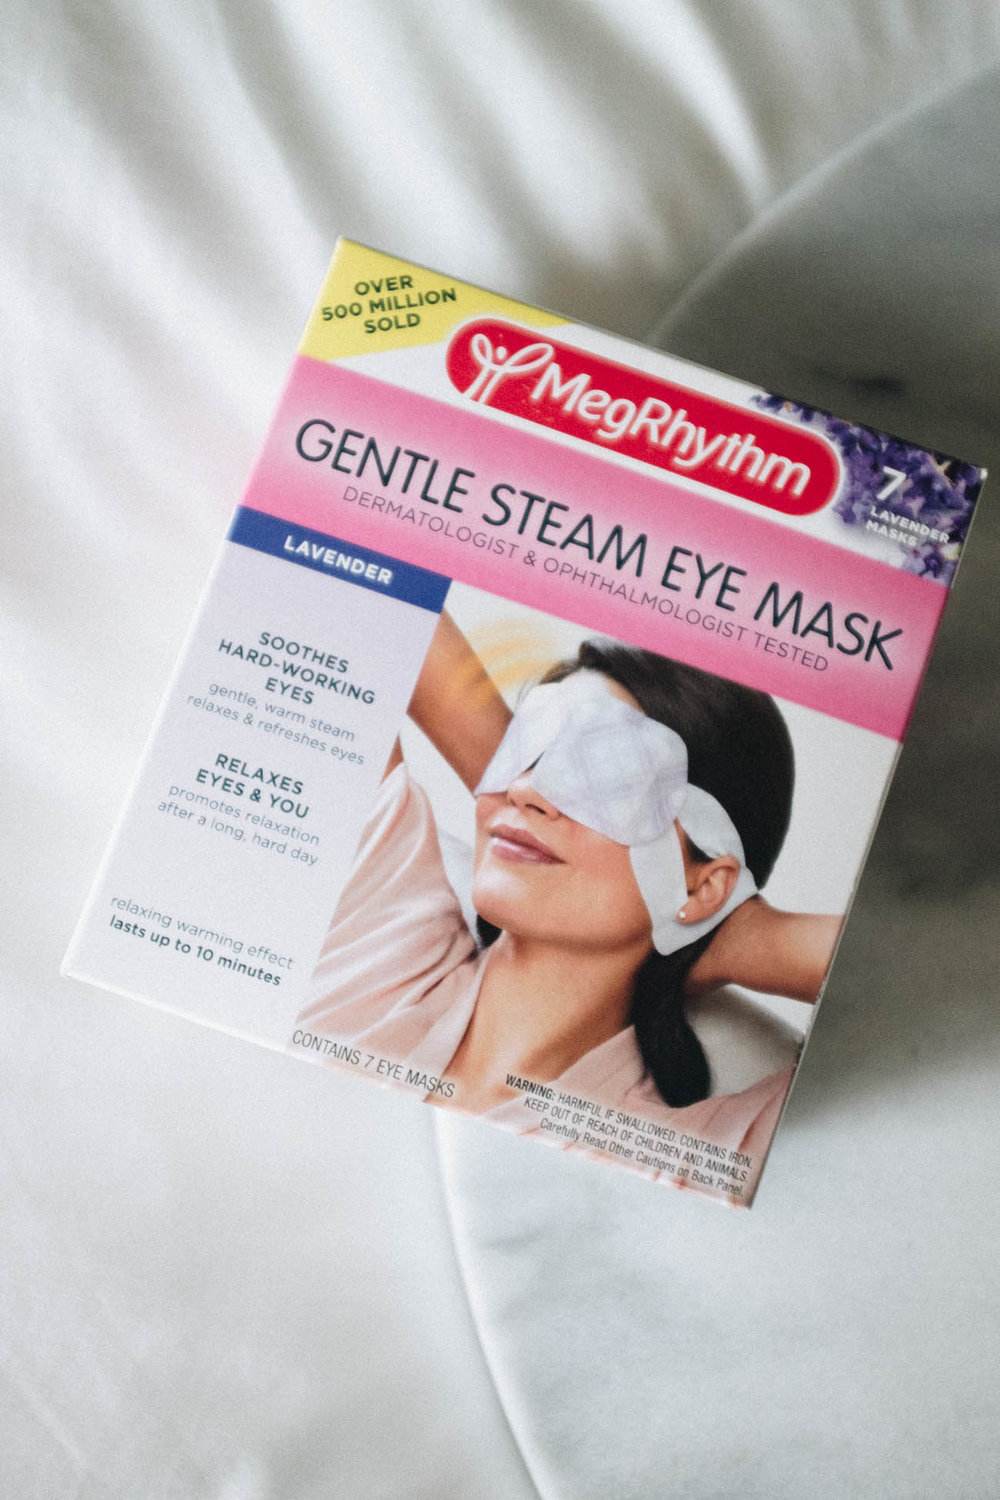 MegRhythm: Gentle Steam Eye Mask - Don't let the packaging fool you, these things actually feel incredible on the skin! I was a bit hesitant to try out this eye mask, especially seeing as those it was steam based, but was pleasantly surprised by how calming it felt on the skin. This was one product I took with me while I was traveling down to Southern California. I used it after we had finished driving for the day, and it was the perfect way to wind down for the evening.